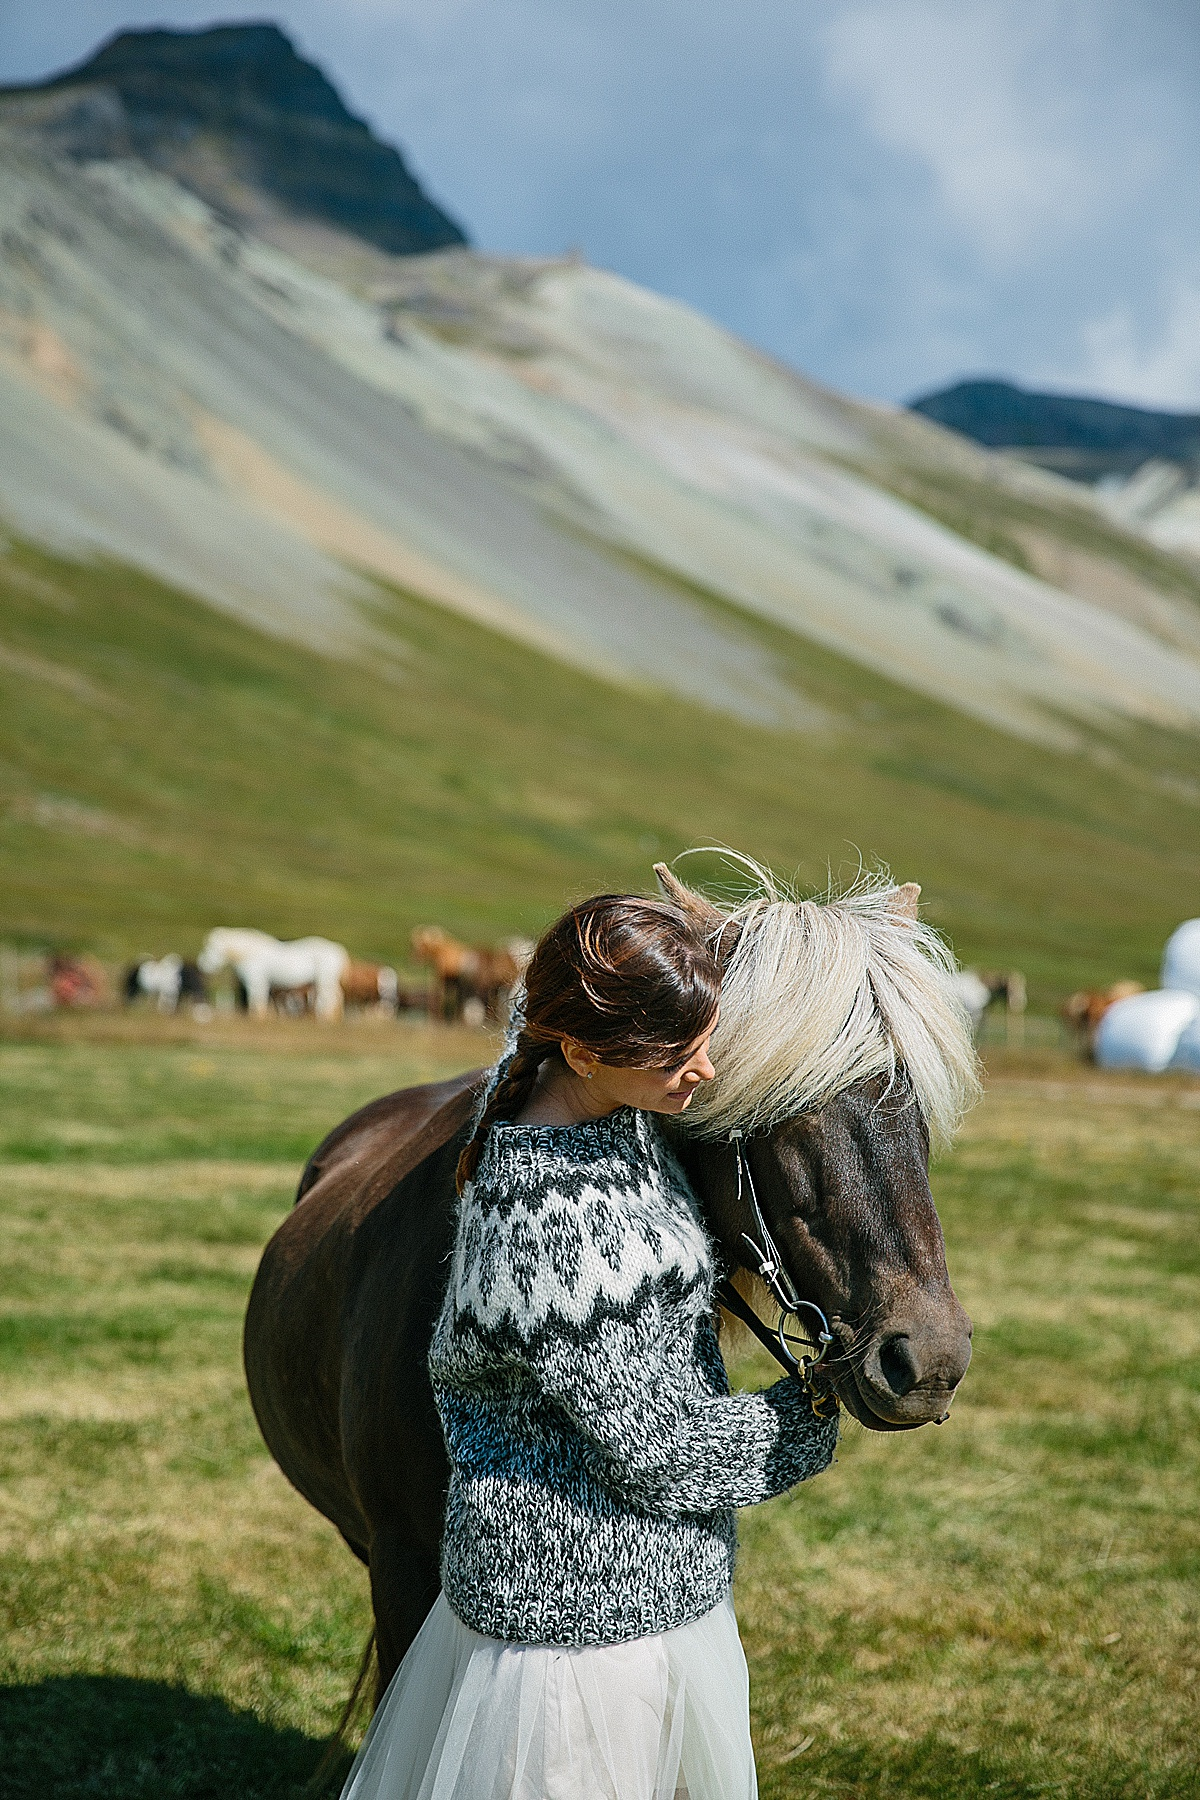 Icelandic Horses!! - We have connections to many wonderful Icelandic Horse Farms for a wedding photo shoot. I highly recommend that we schedule a stop at one of these lovely family run farms for a frolic with the horsies!